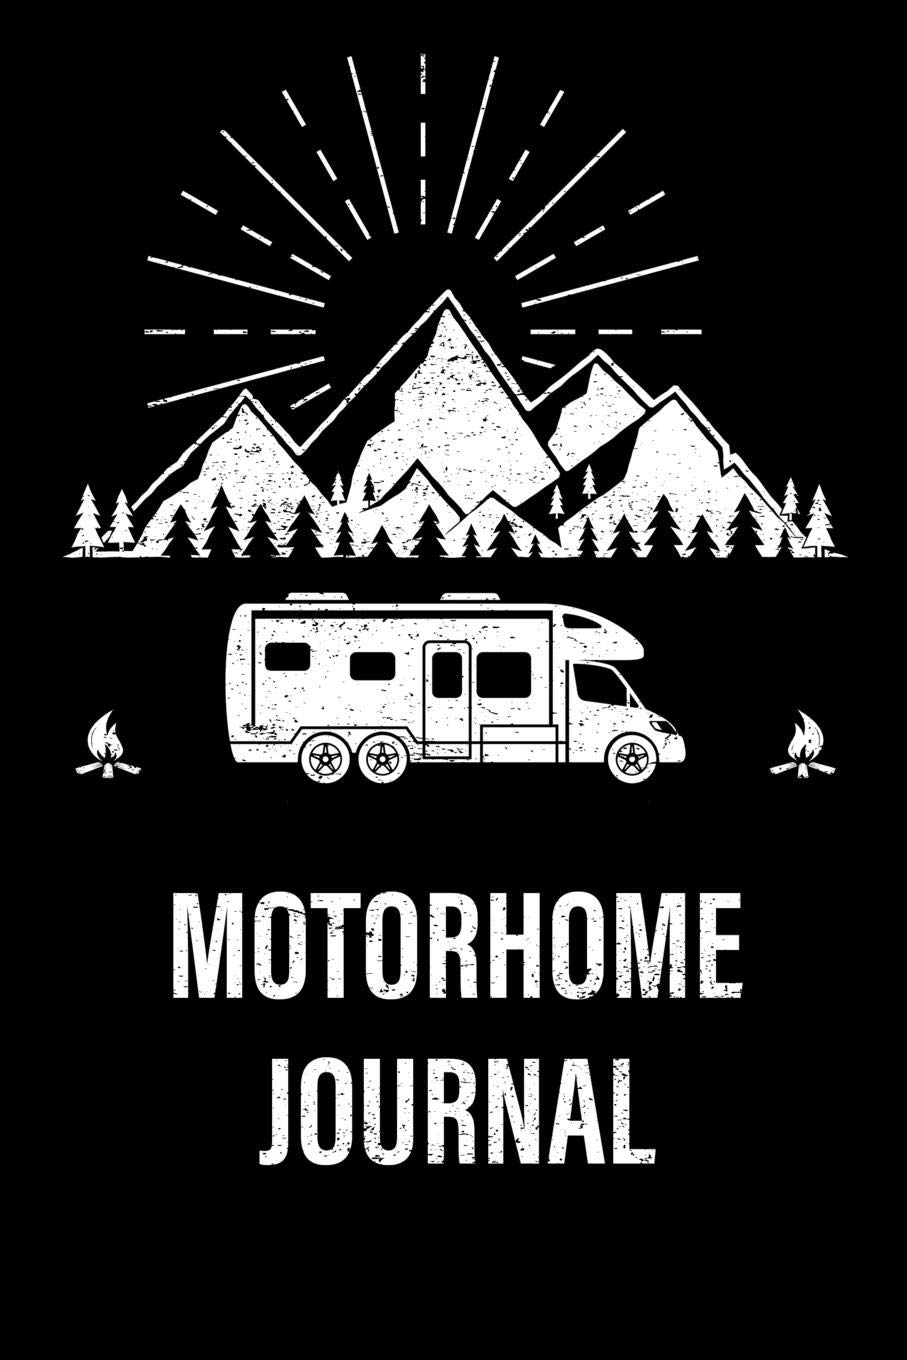 Motorhome Journal: Roadtrip Log and Maintenance Tracker